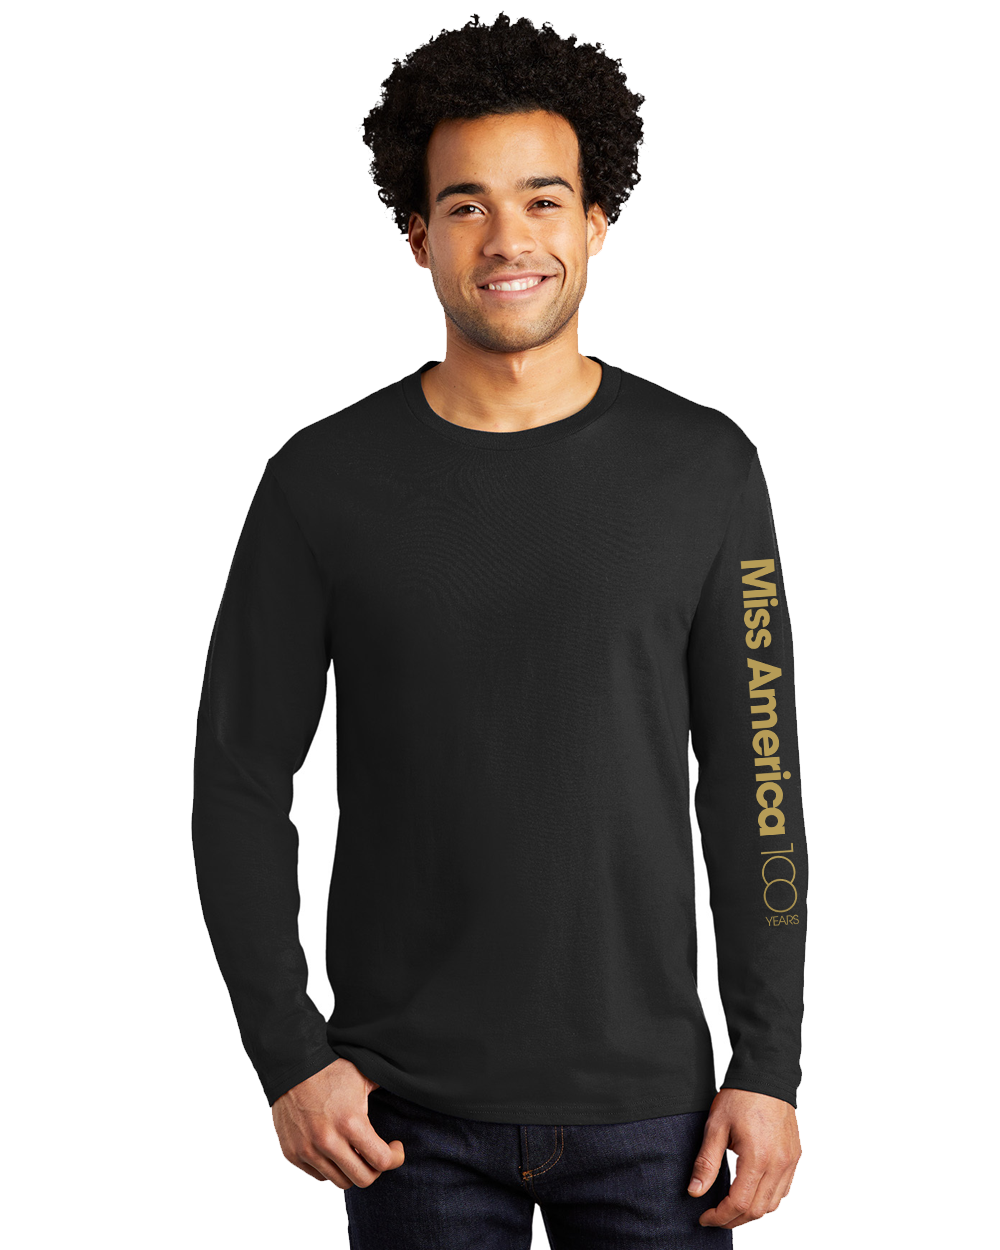 MA 100th Long Sleeve Tee - Black